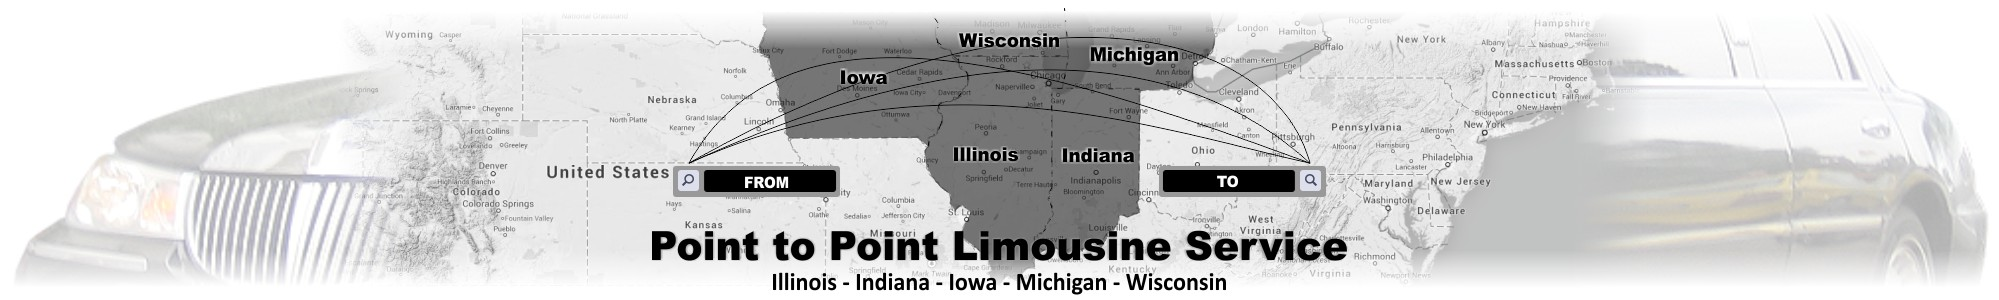 Point to Point Limousine Service in Illinois, Indiana, Iowa, Michigan, Wisconsin by Affordable Limo Inc